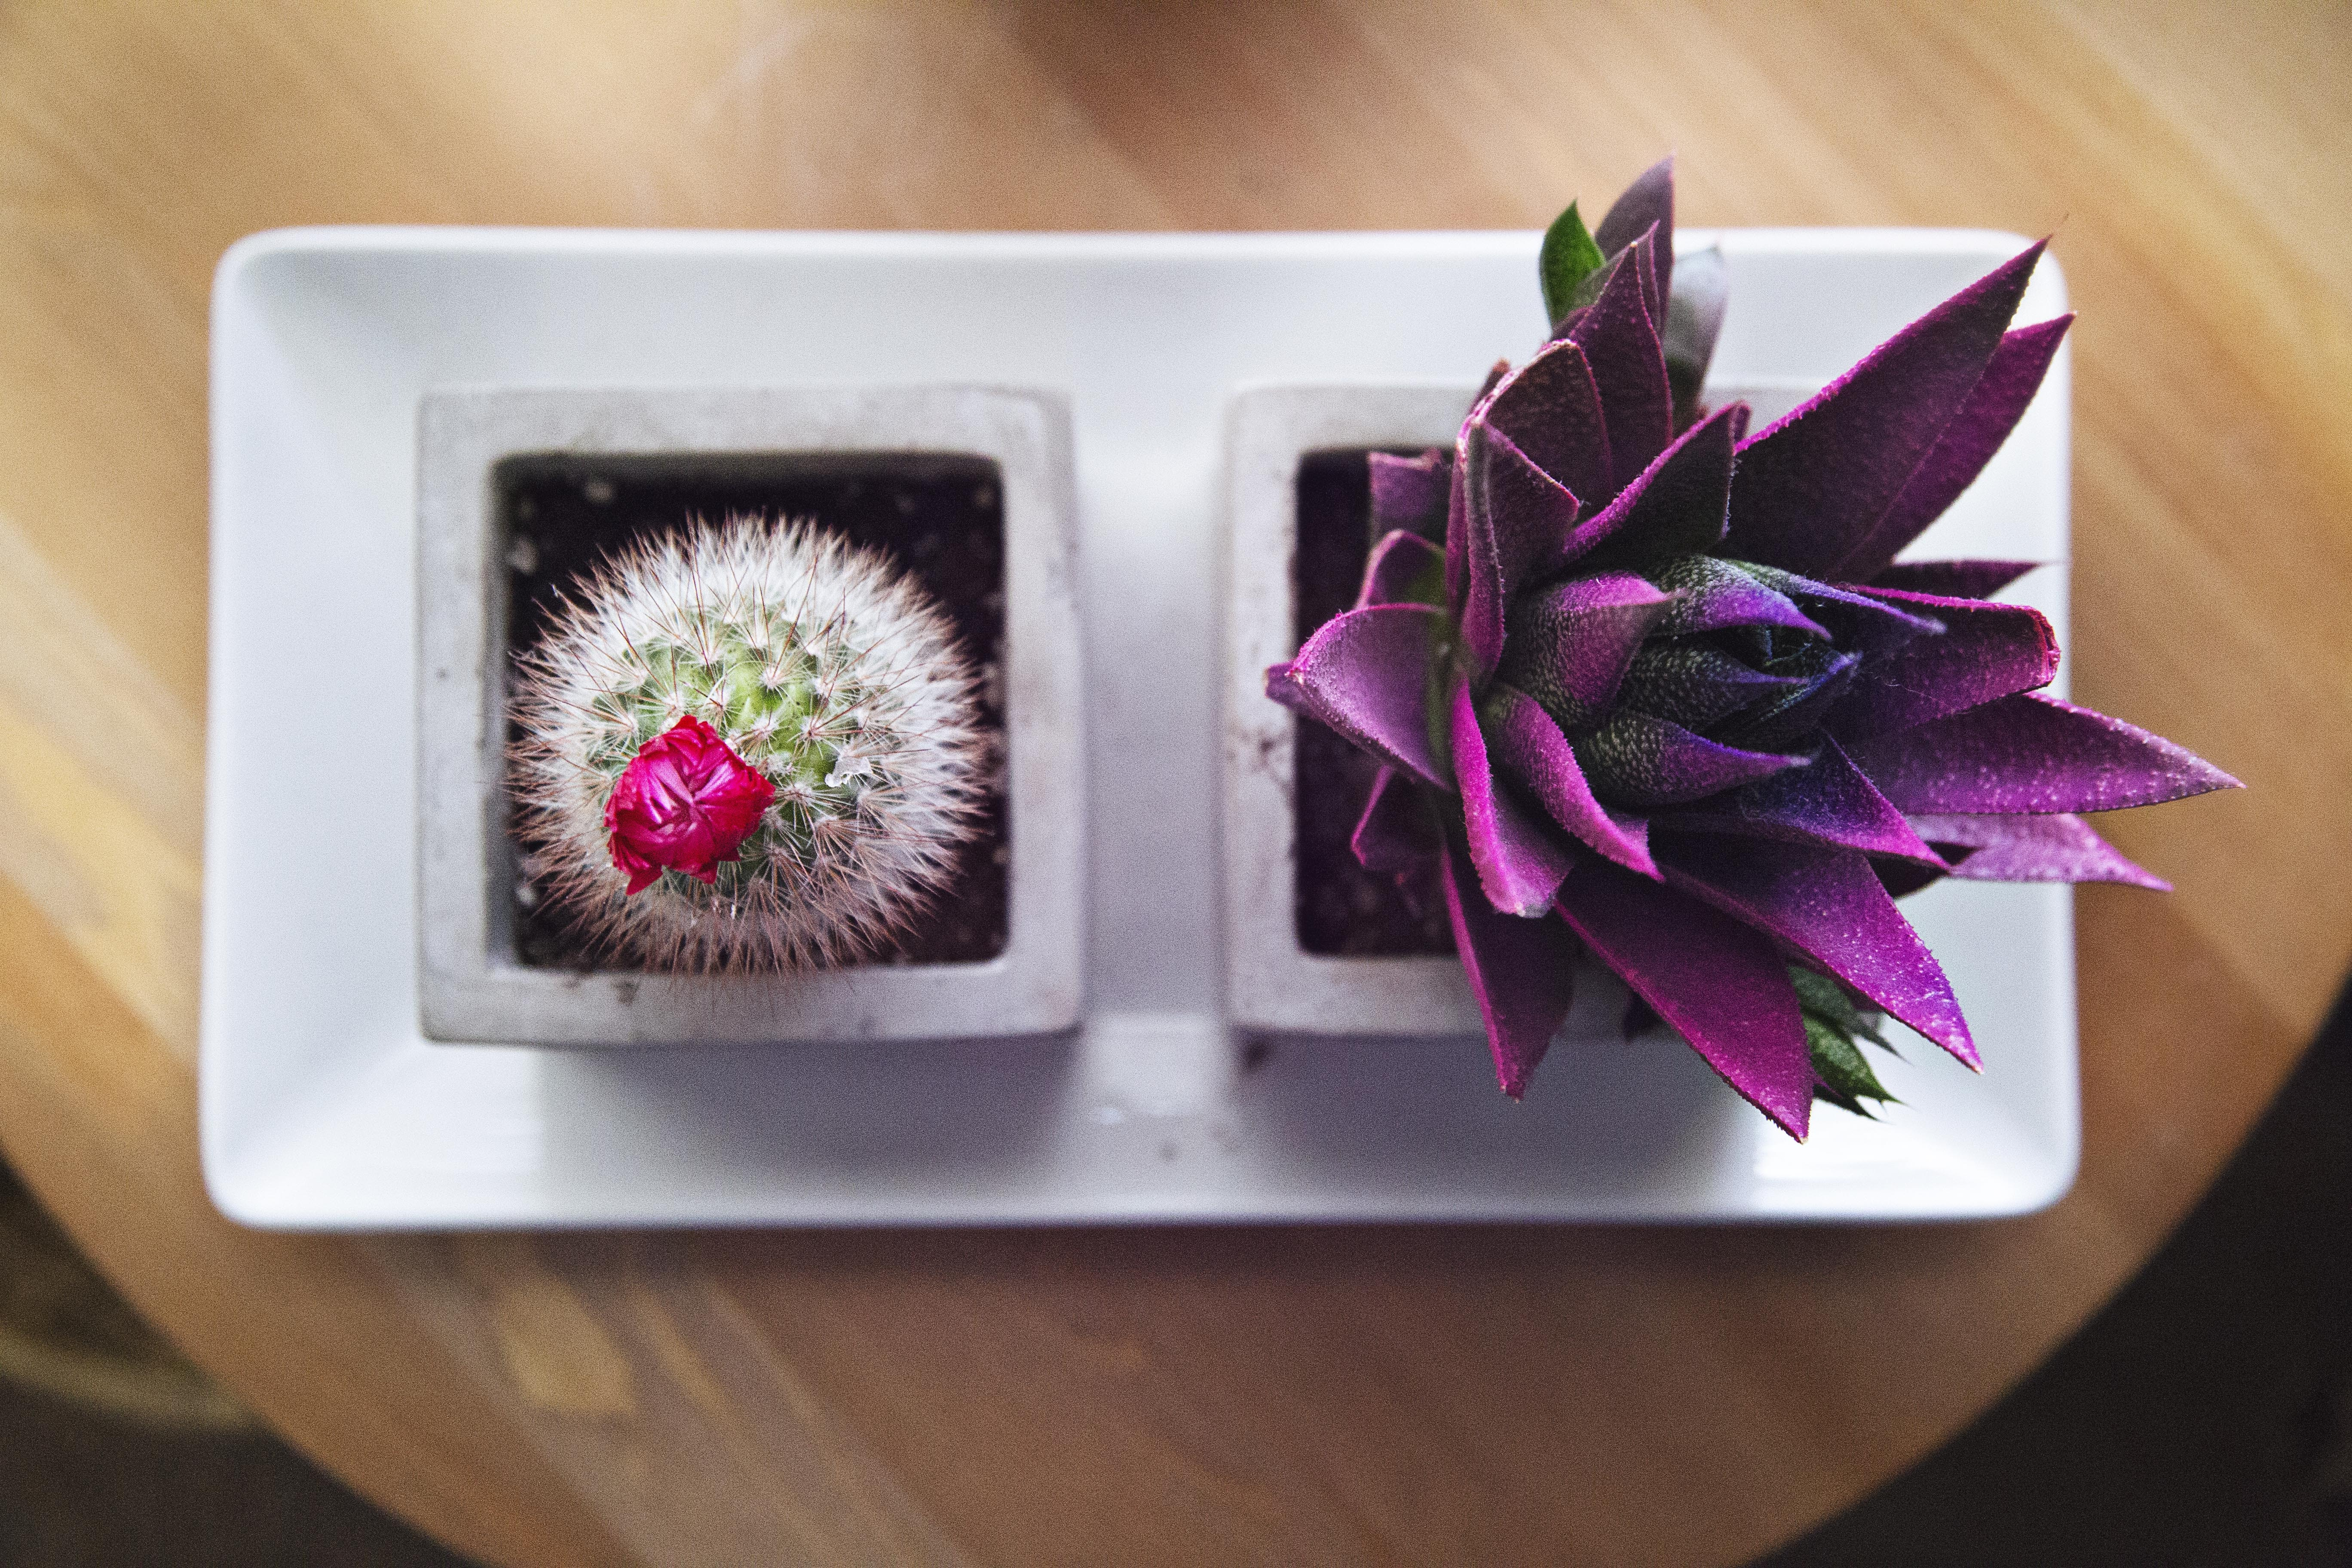 flatlay photograph of pink and purple succulent and cactus plant